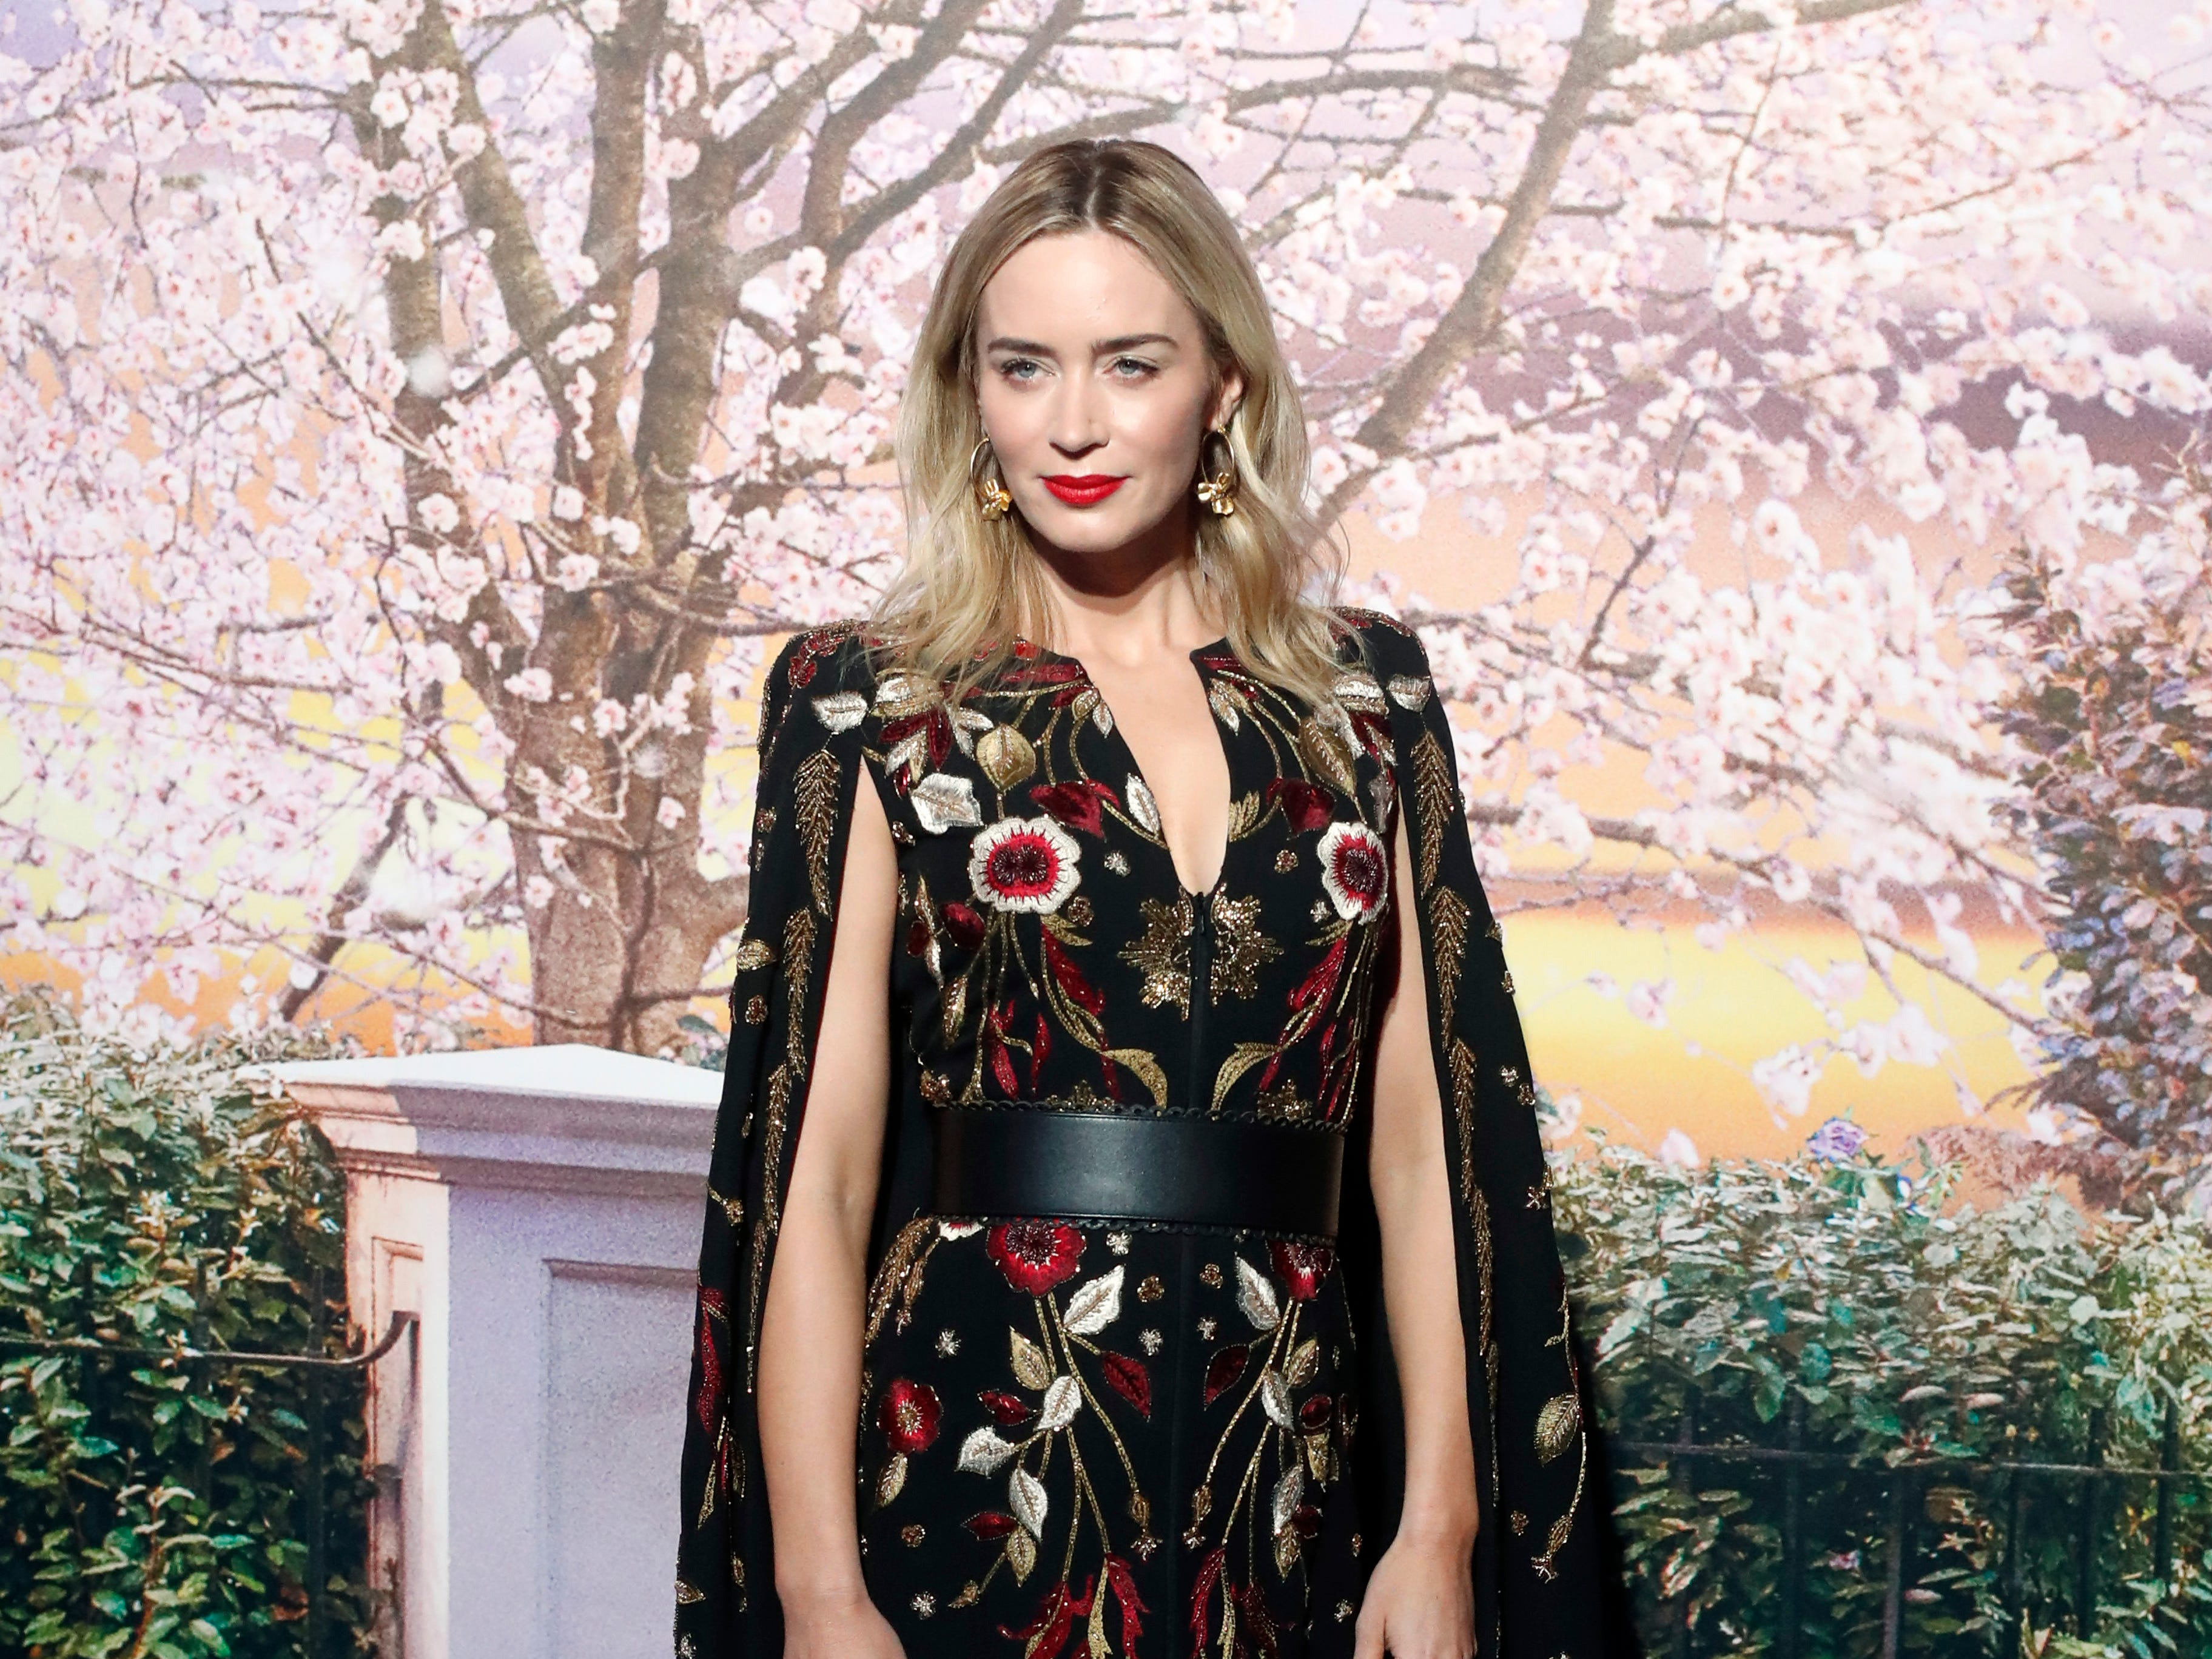 """British actress Emily Blunt poses for photographers during the photocall of the premiere of """"Mary Poppins Returns"""", in Paris, Monday, Dec.10, 2018. (AP Photo/Thibault Camus) ORG XMIT: XTC106"""